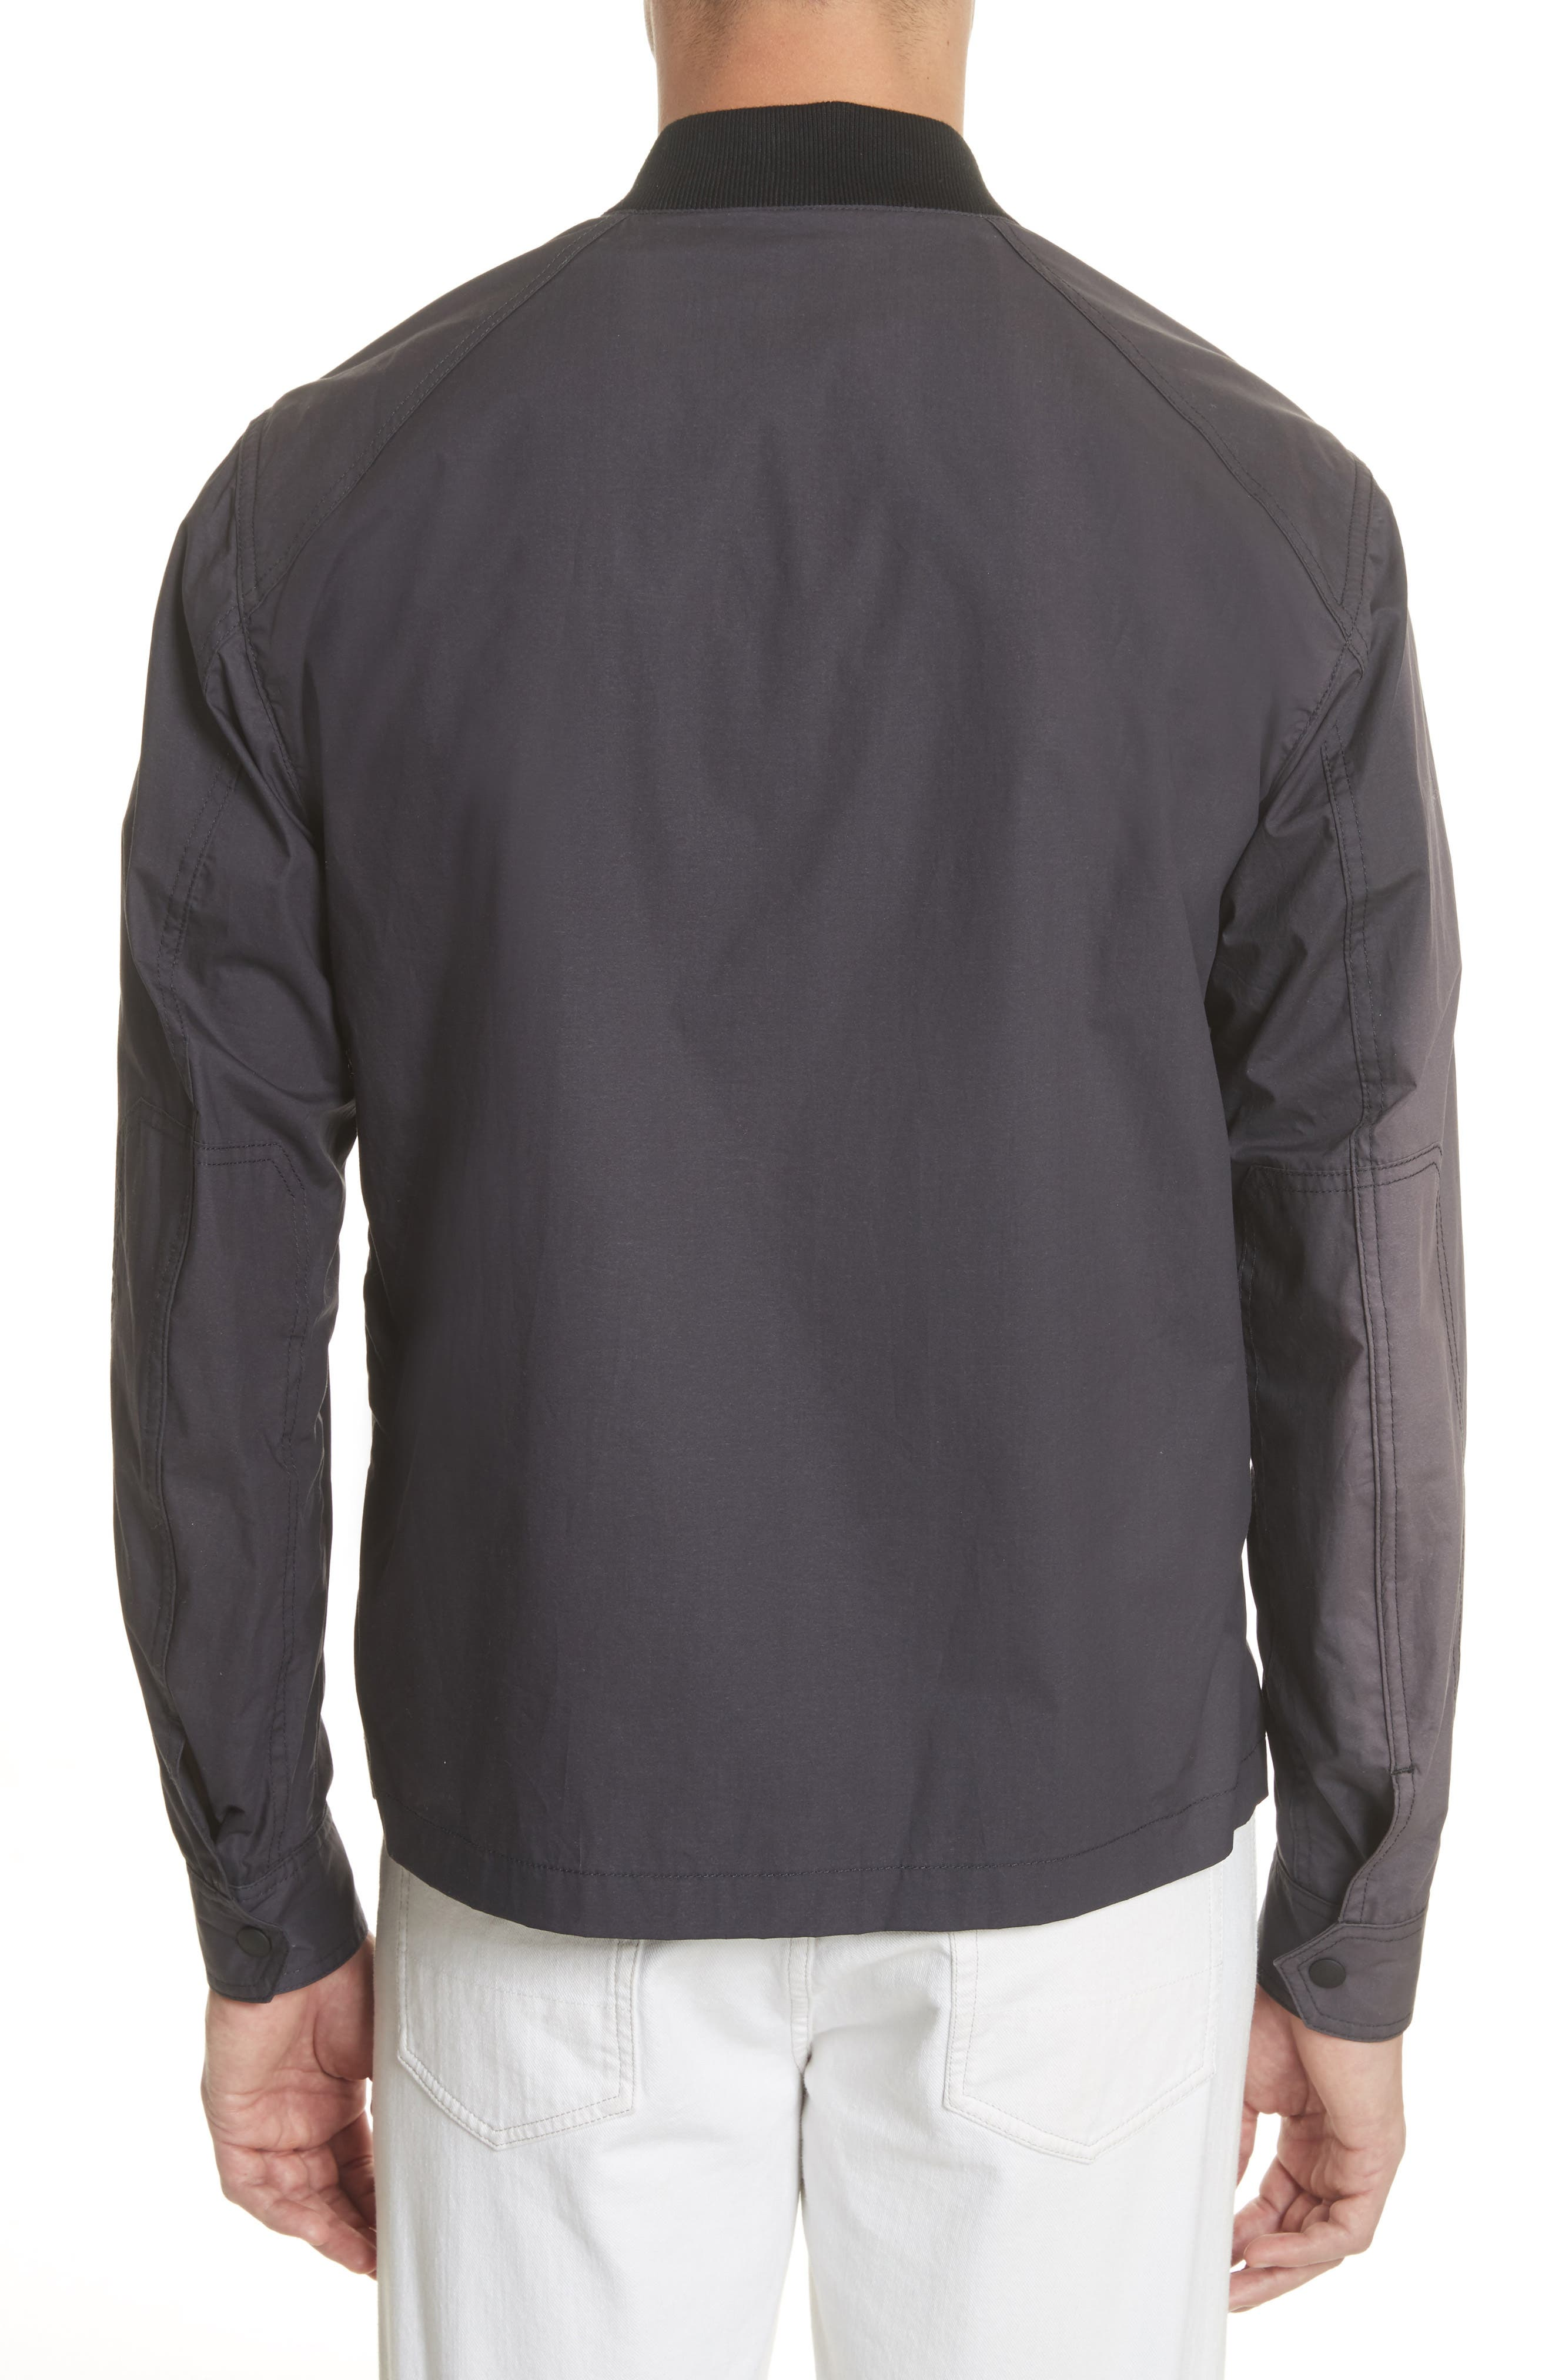 Cardingham Jacket,                             Alternate thumbnail 2, color,                             Charcoal